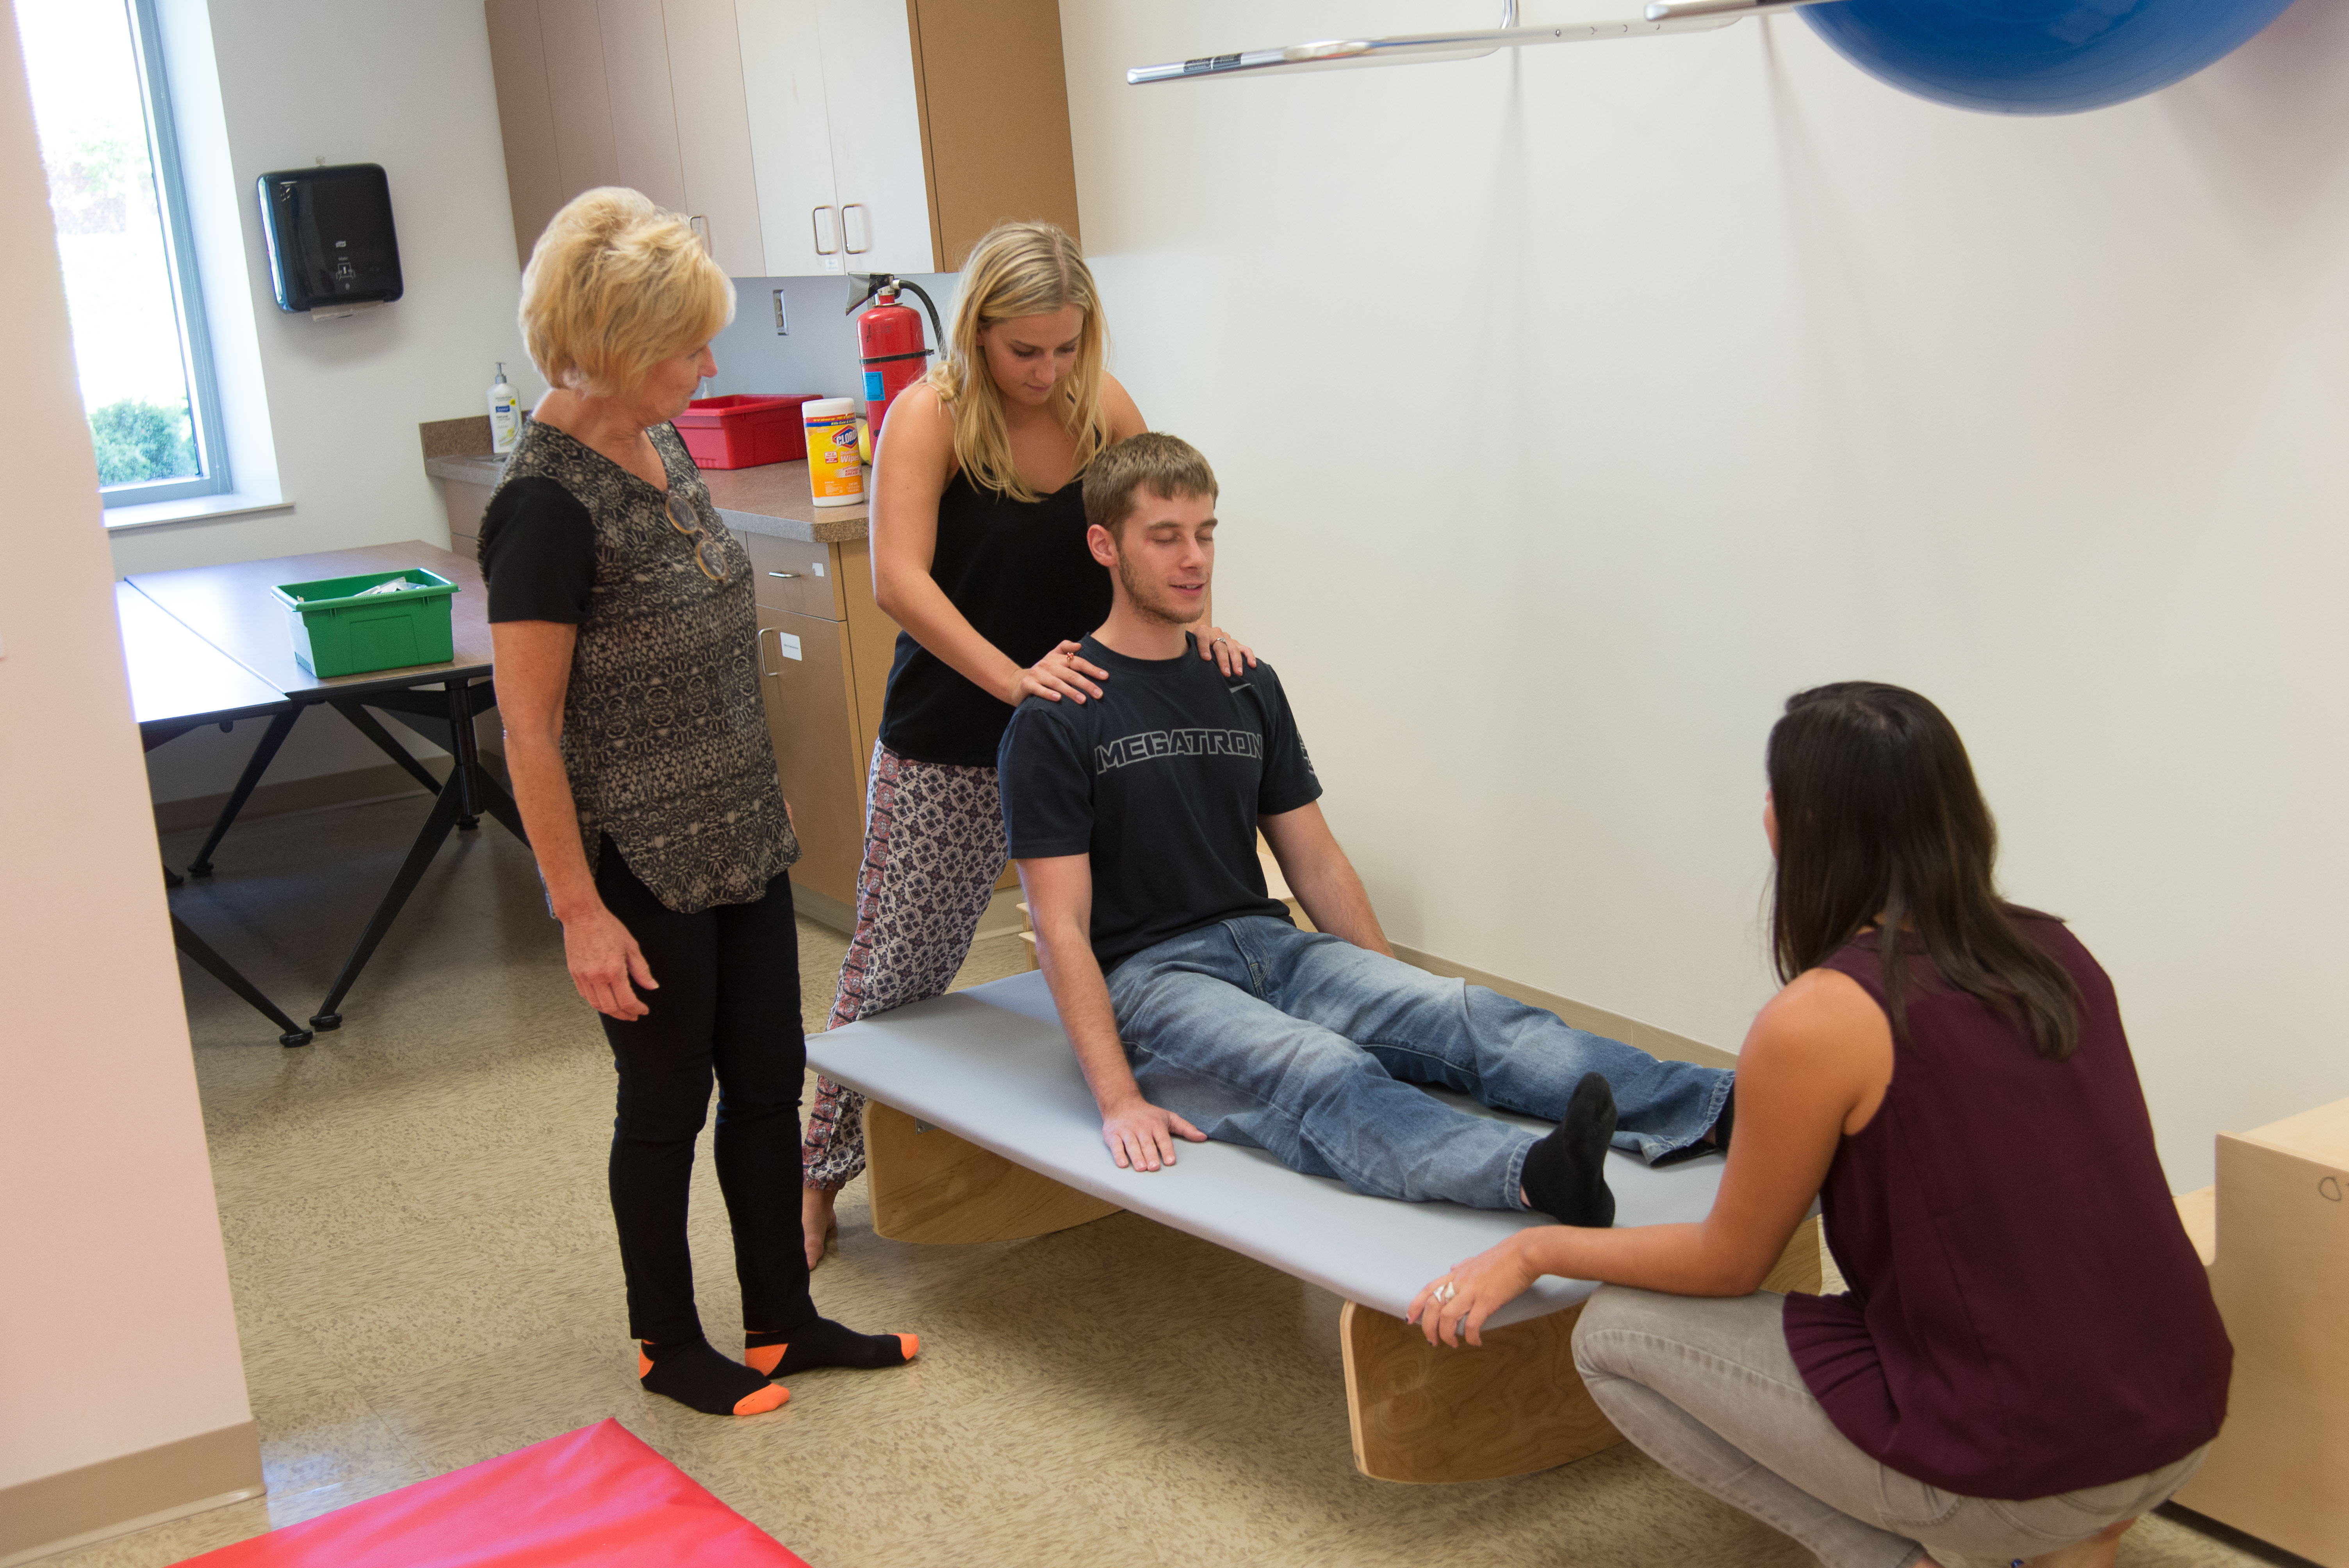 Clinic pediatric physical therapy - Occupational Therapy Class In Pediatric Clinic In The York Institute